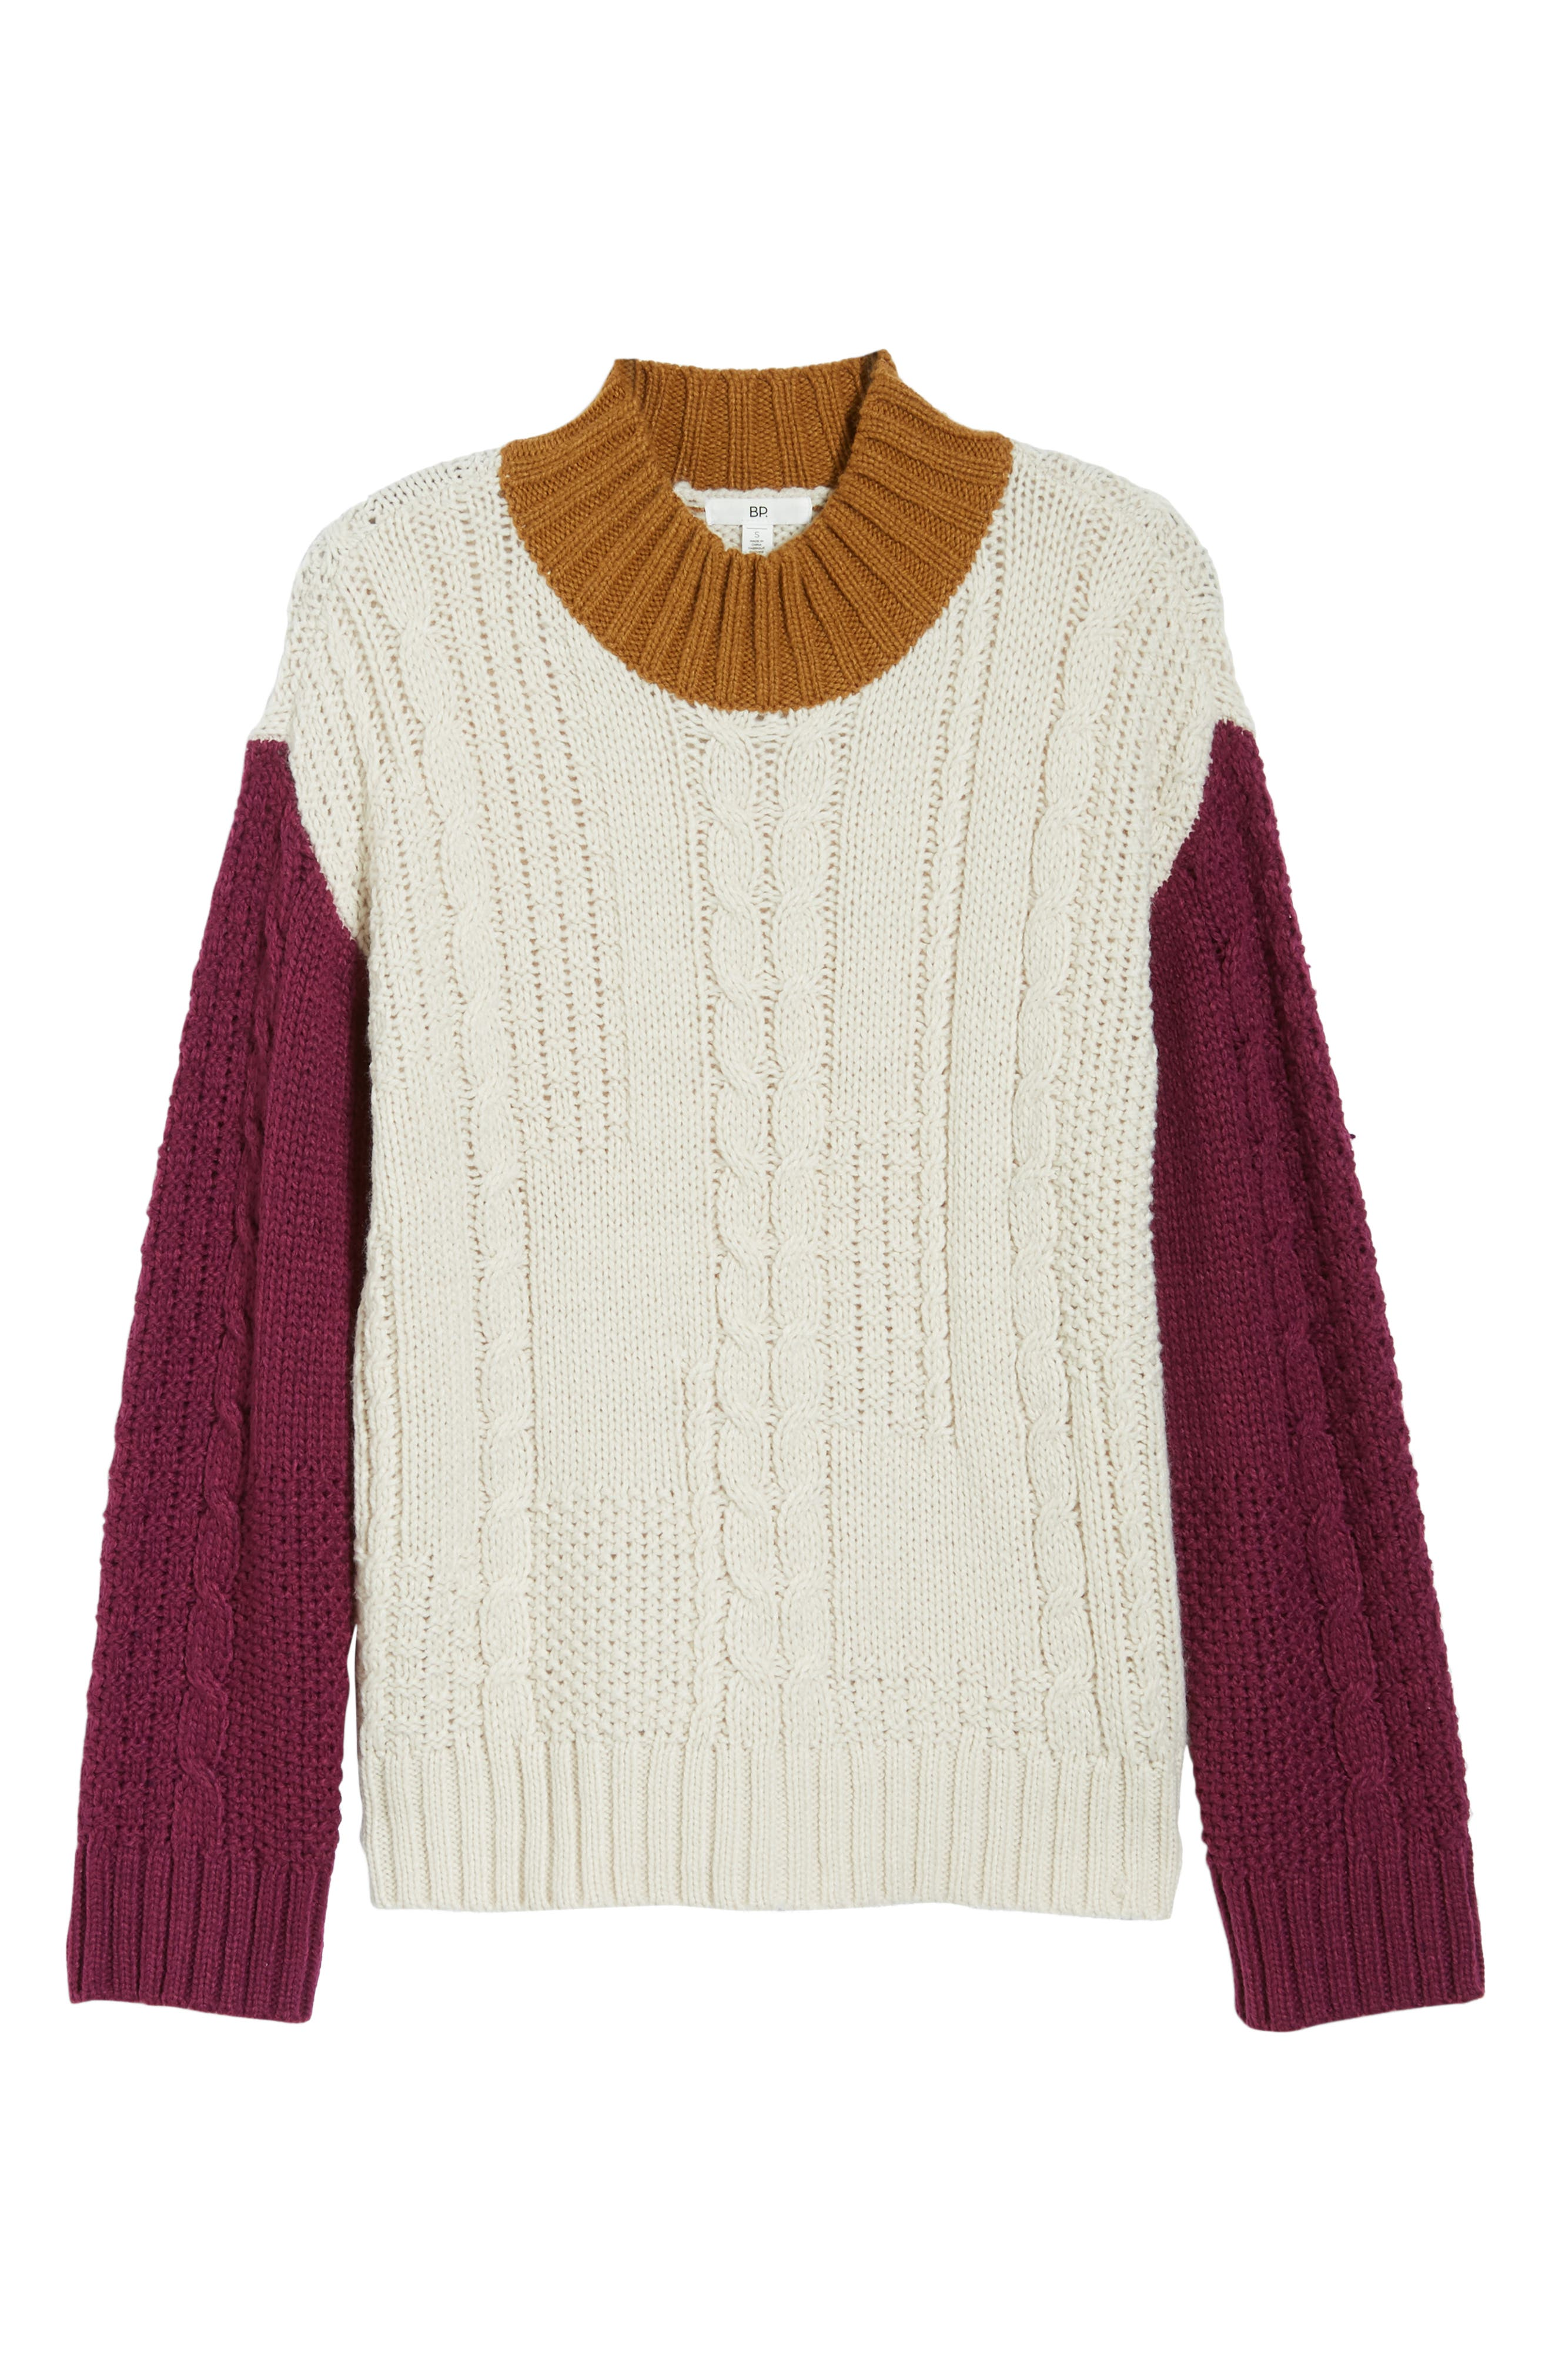 Colorblock Cable Knit Pullover,                             Alternate thumbnail 7, color,                             270